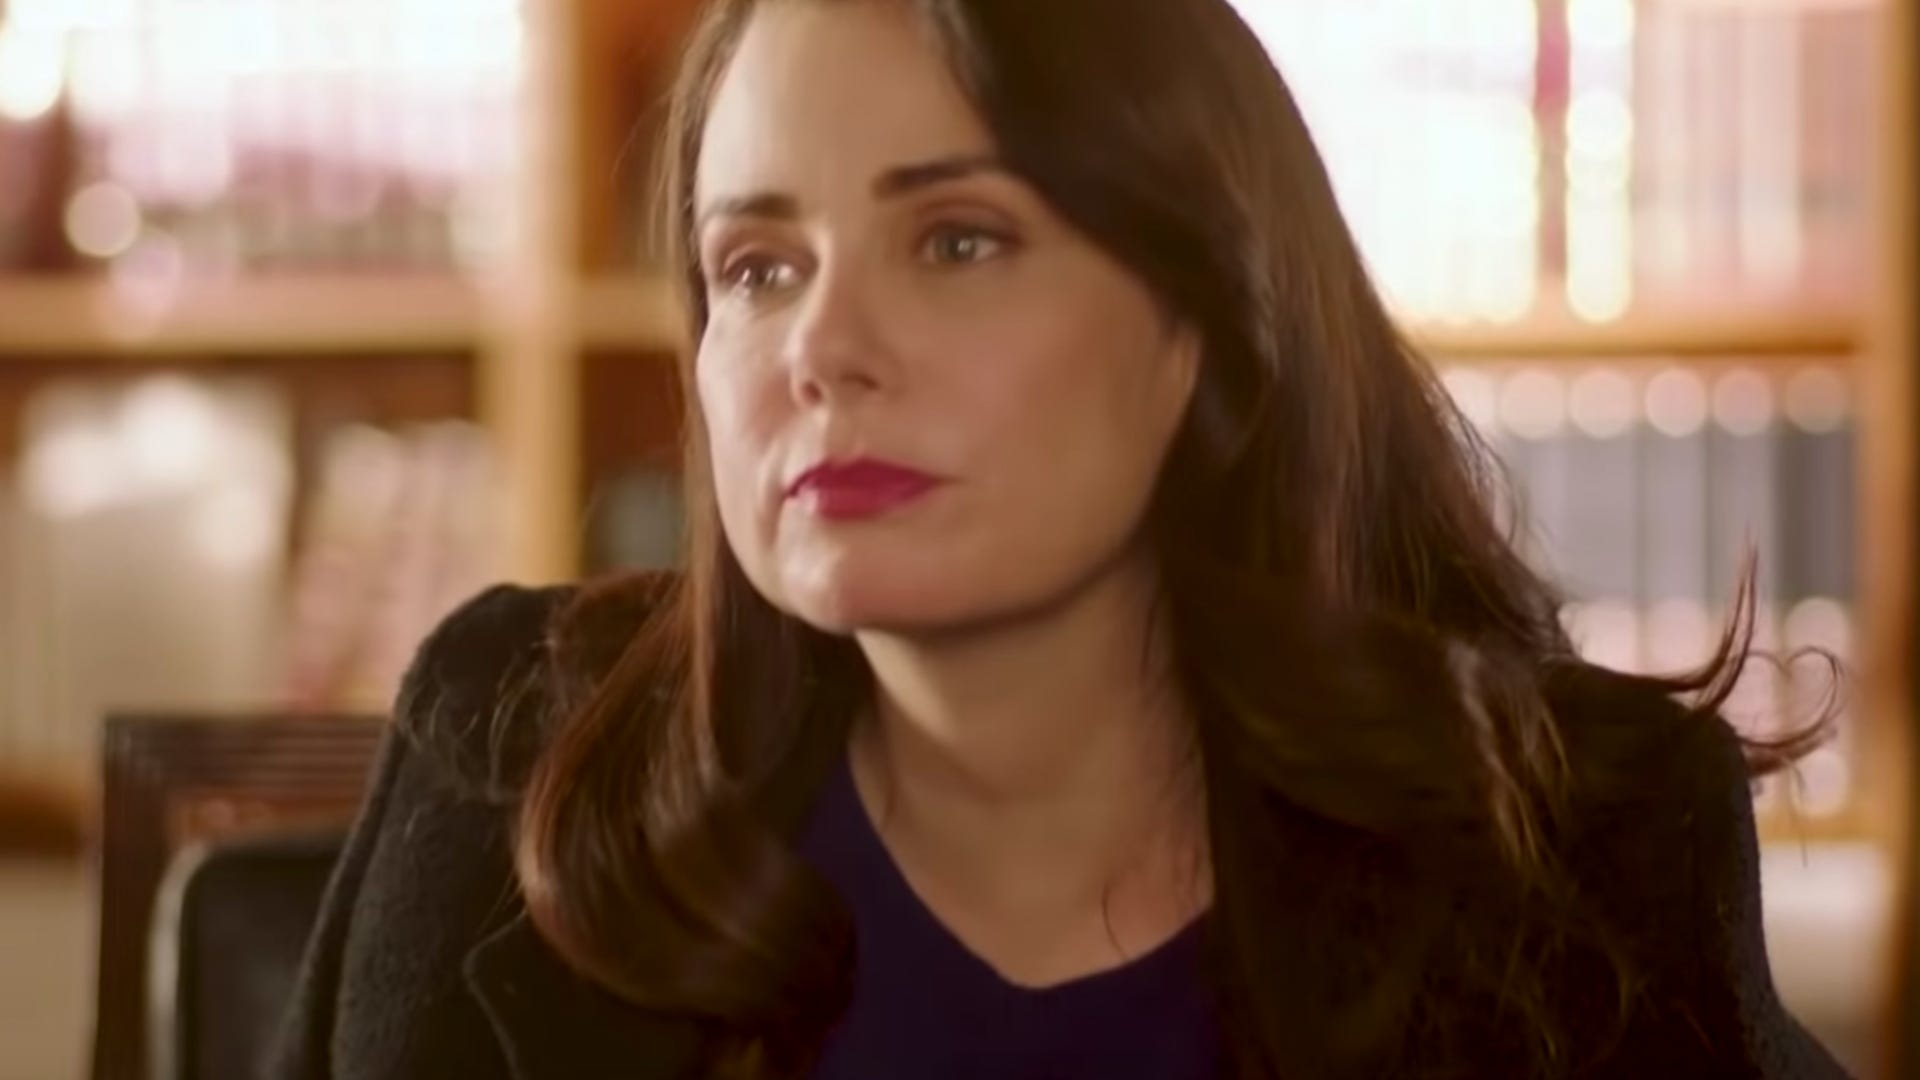 Mia Kirshner, The College Admissions Scandal